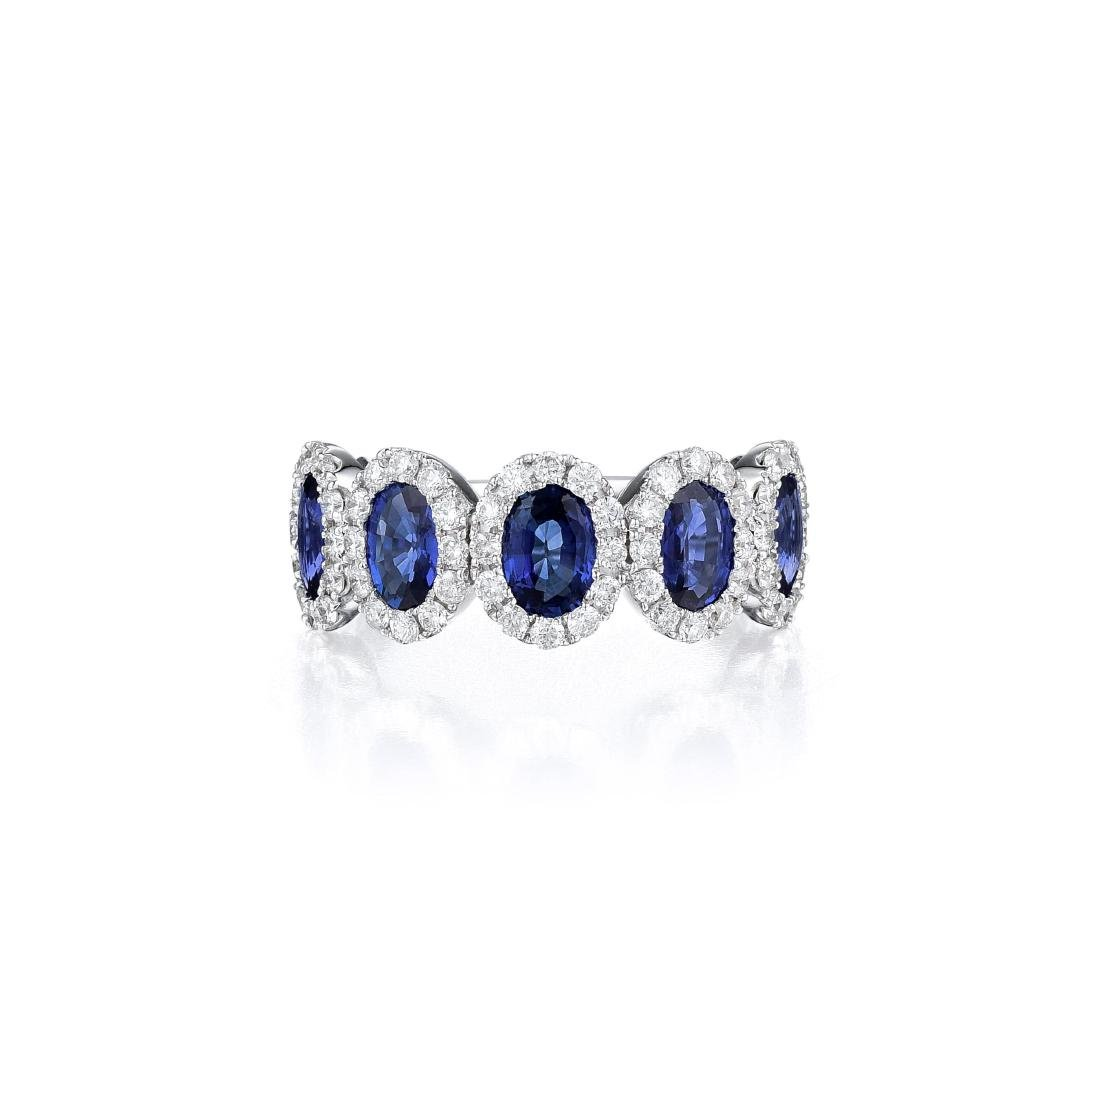 An 18K White Gold Sapphire and Diamond Ring